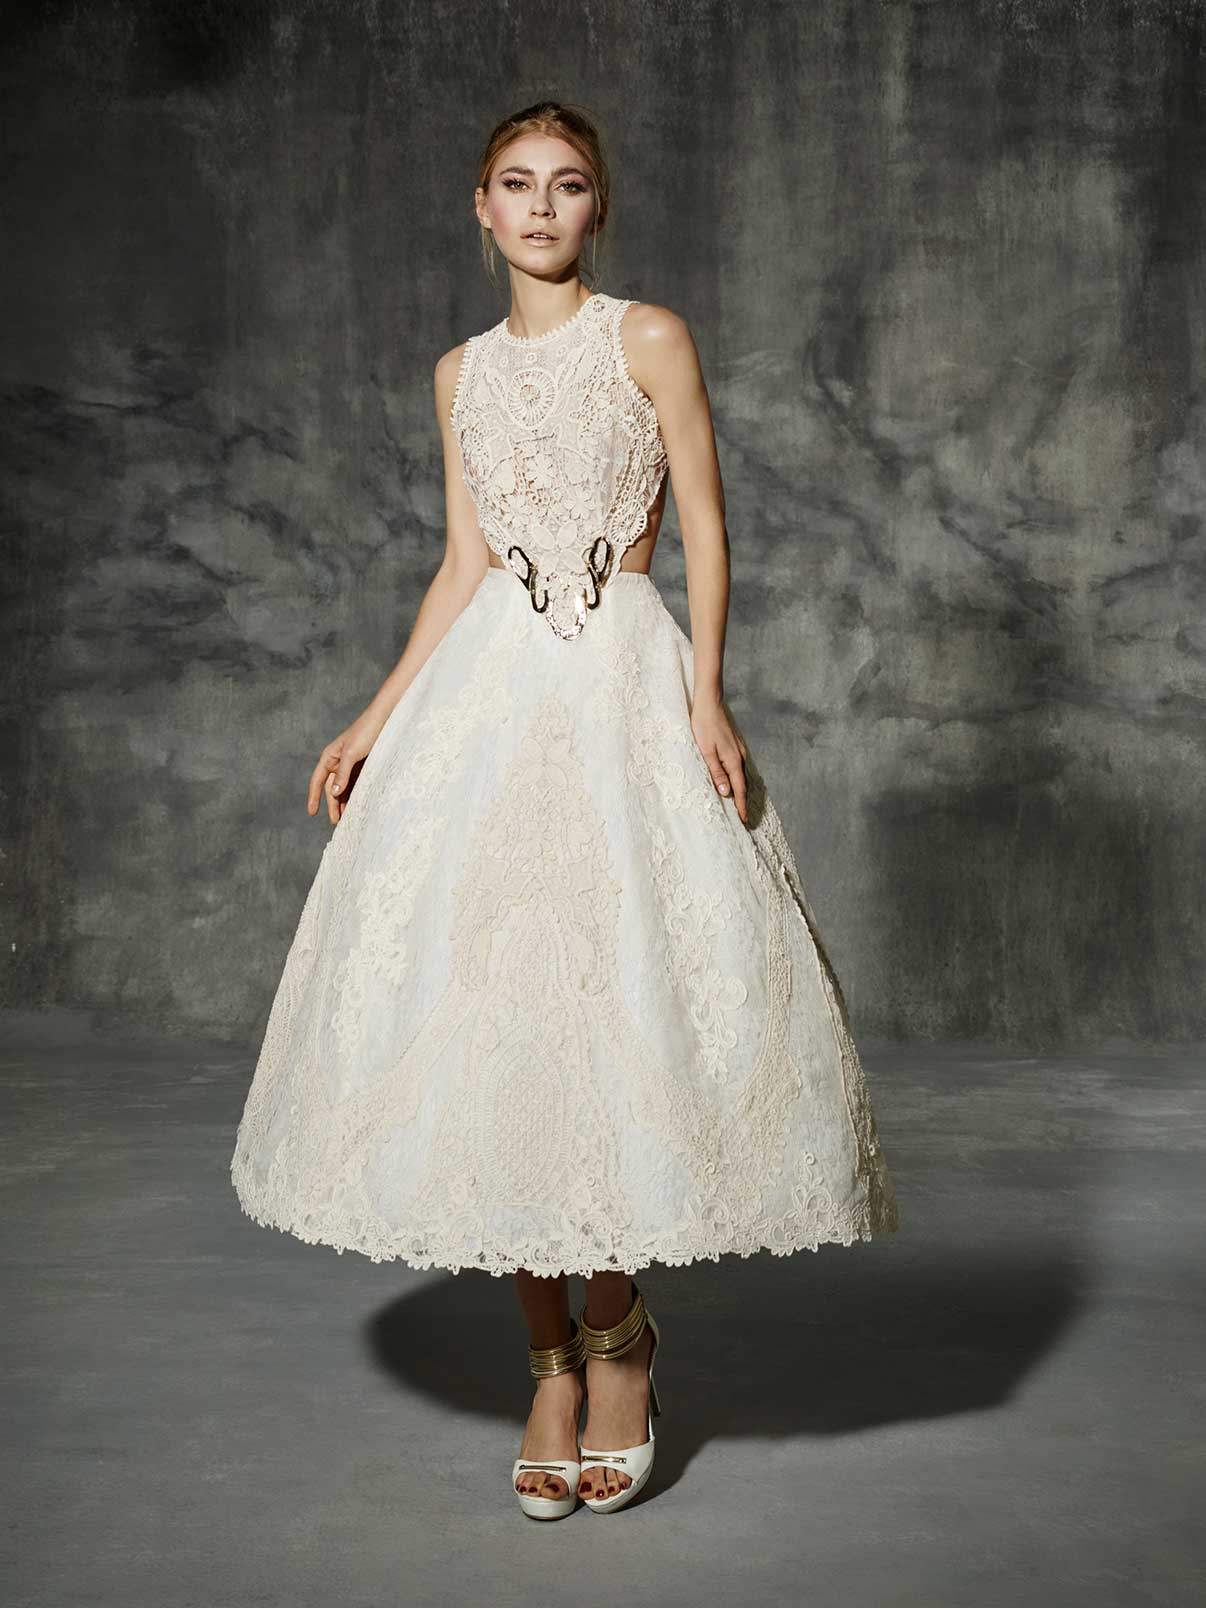 Bailen wedding dress